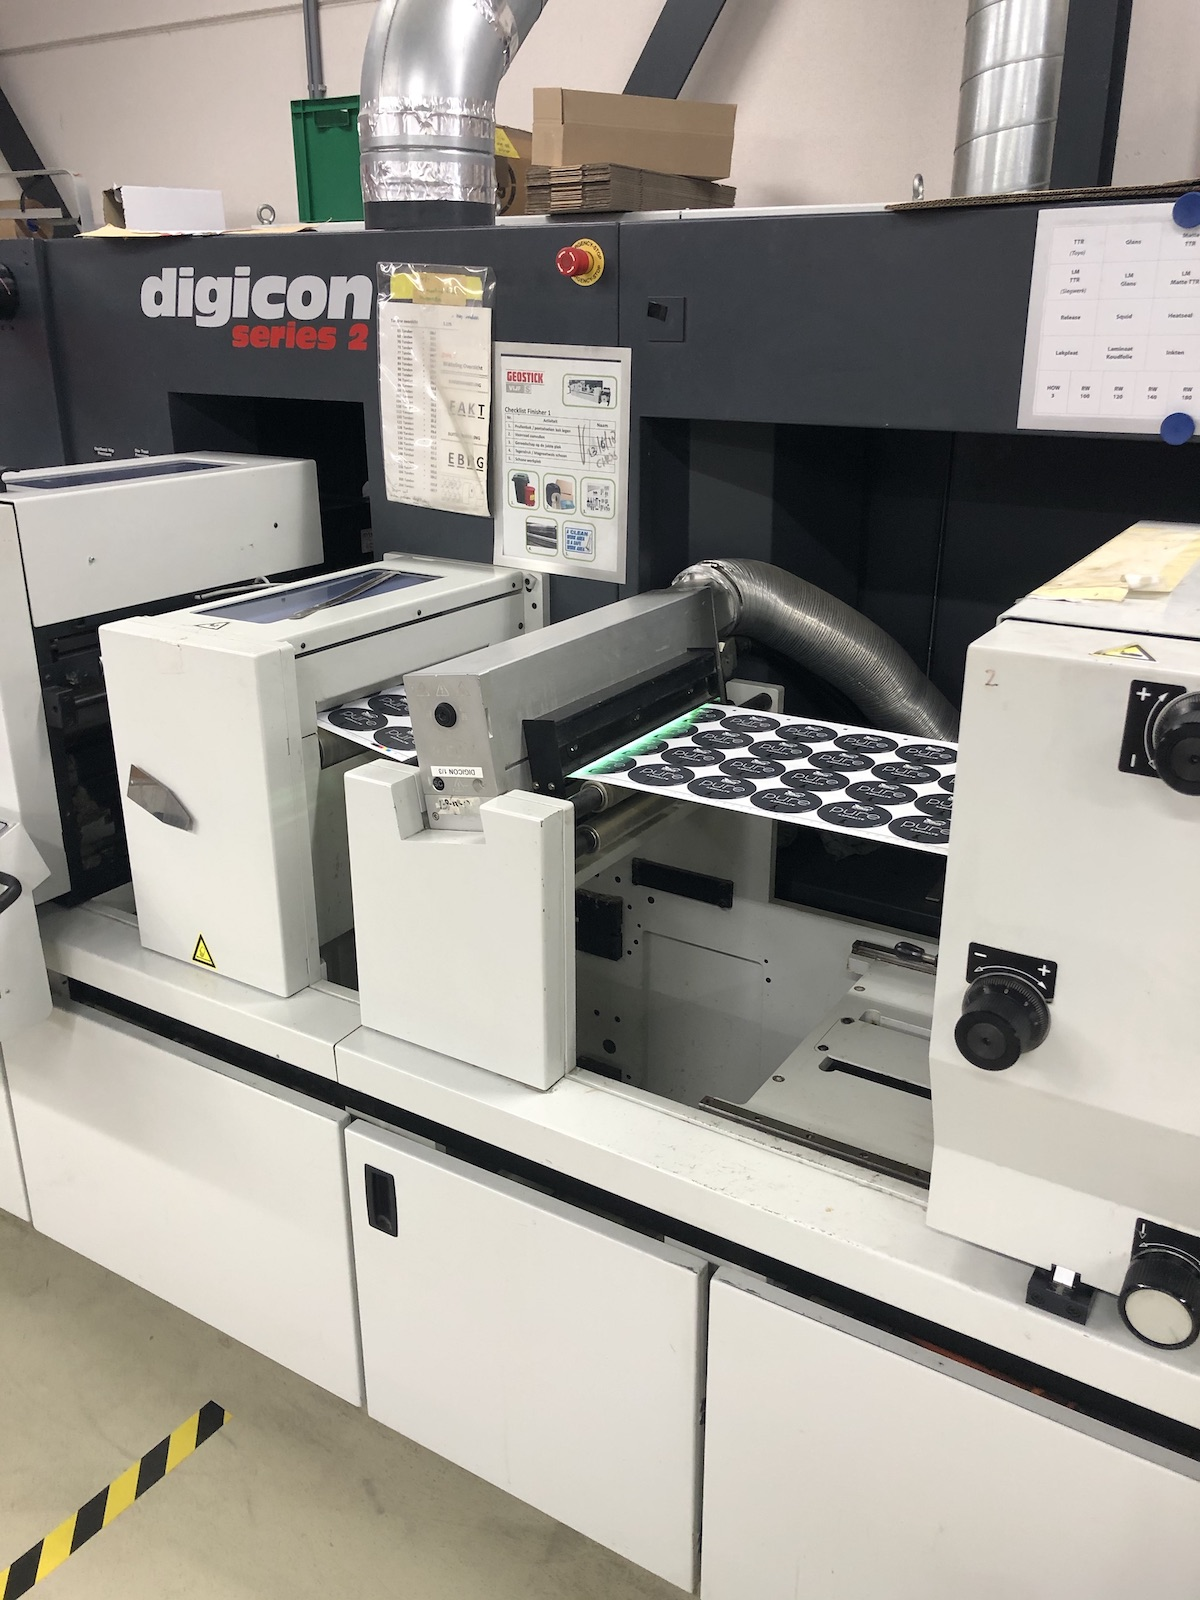 ABG Digicon 2 - Used Flexo Printing Presses and Used Flexographic Equipment-6